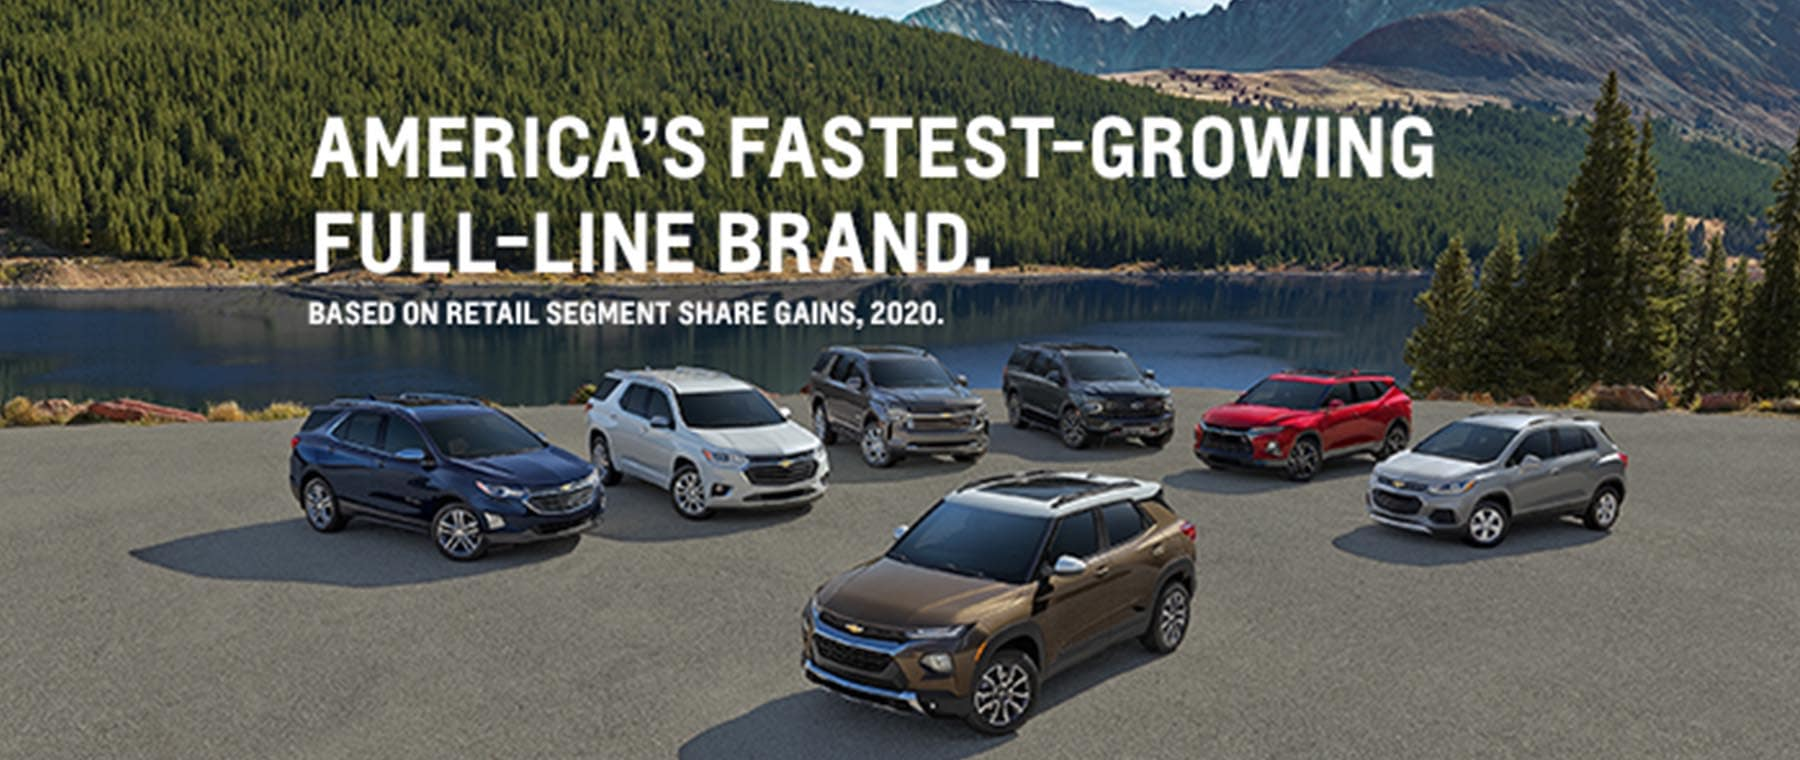 Fastest Growing Lineup